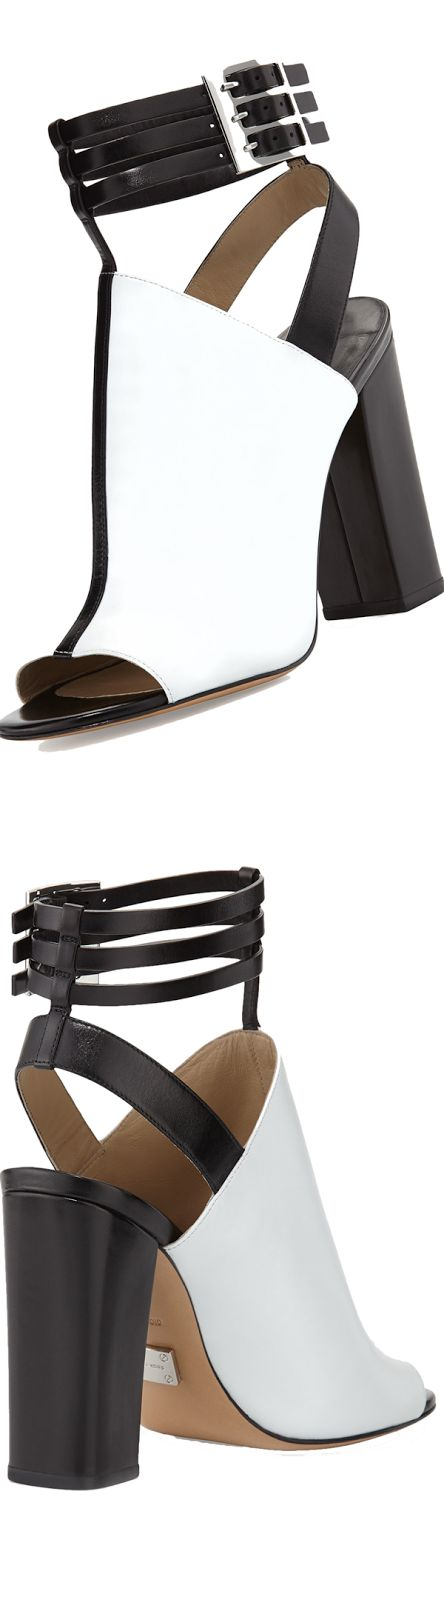 Michael Kors - Fall Sandals | House of Beccaria~